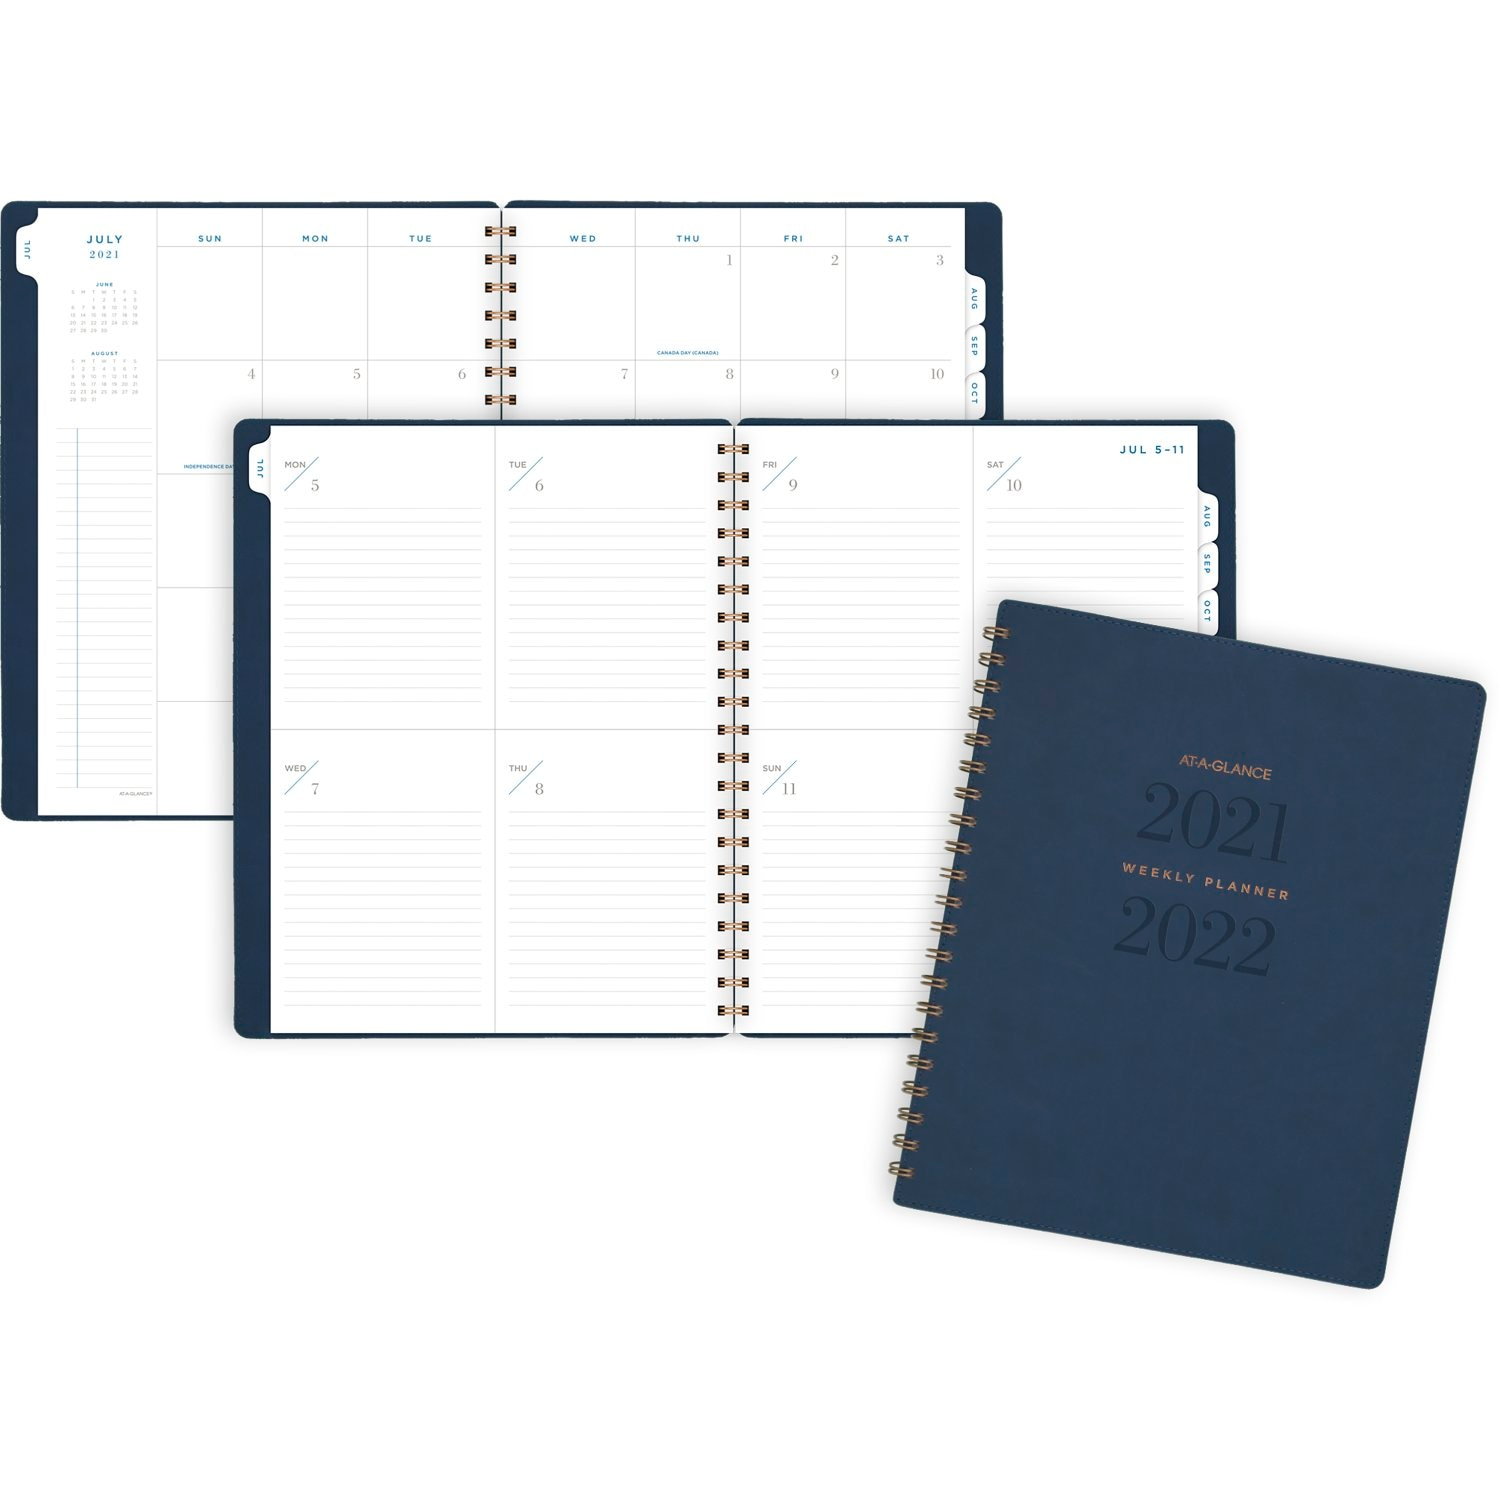 AAG AY 21-22 Navy Planner 8x11